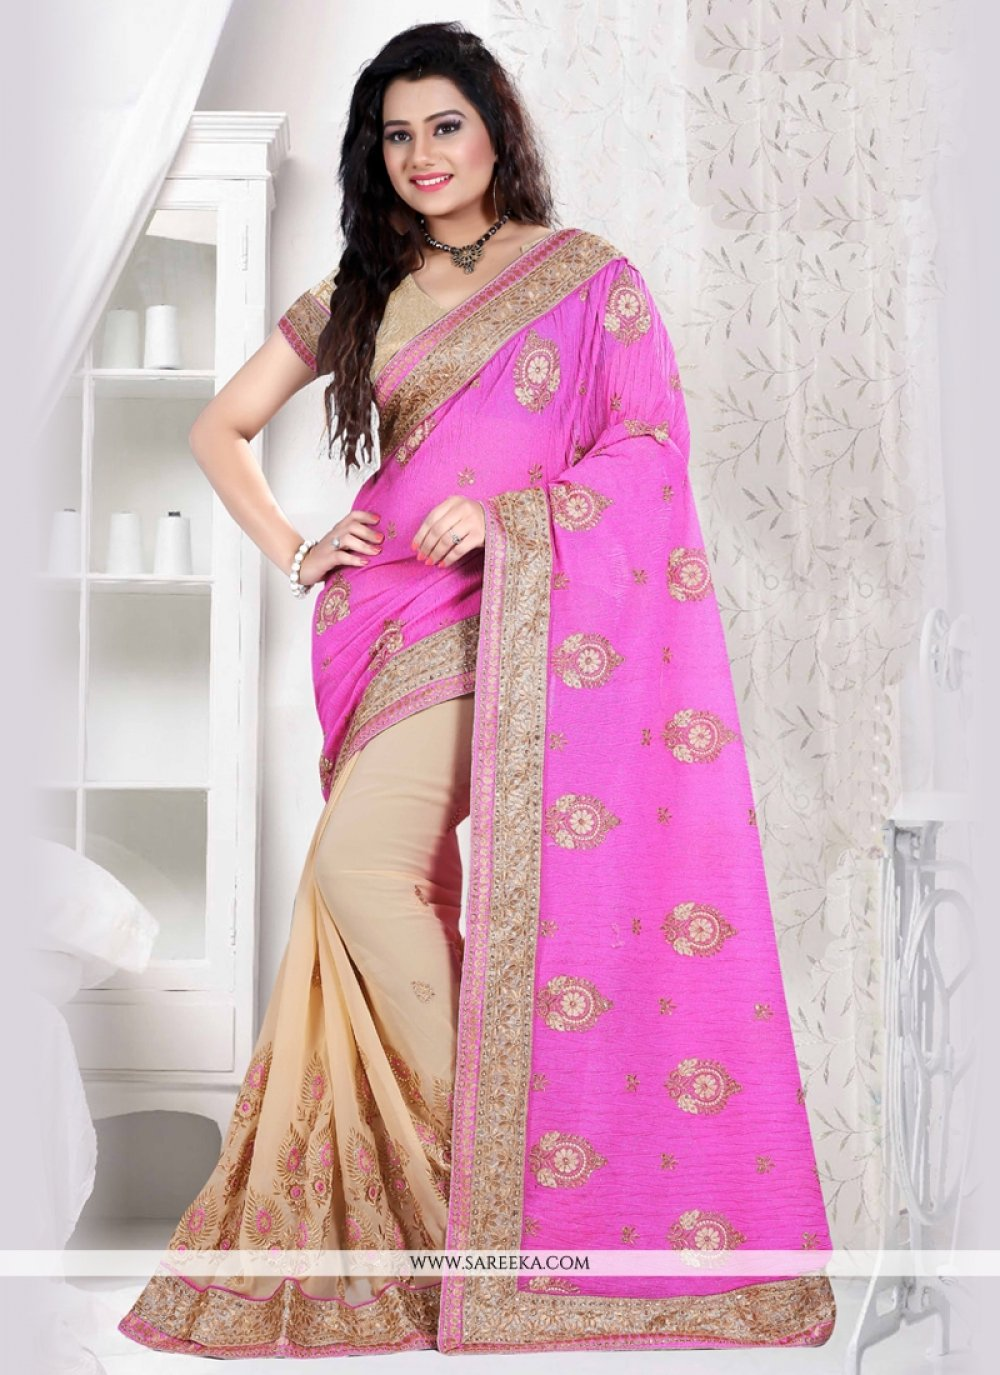 Faux Chiffon Hot Pink and Beige Resham Work Designer Saree